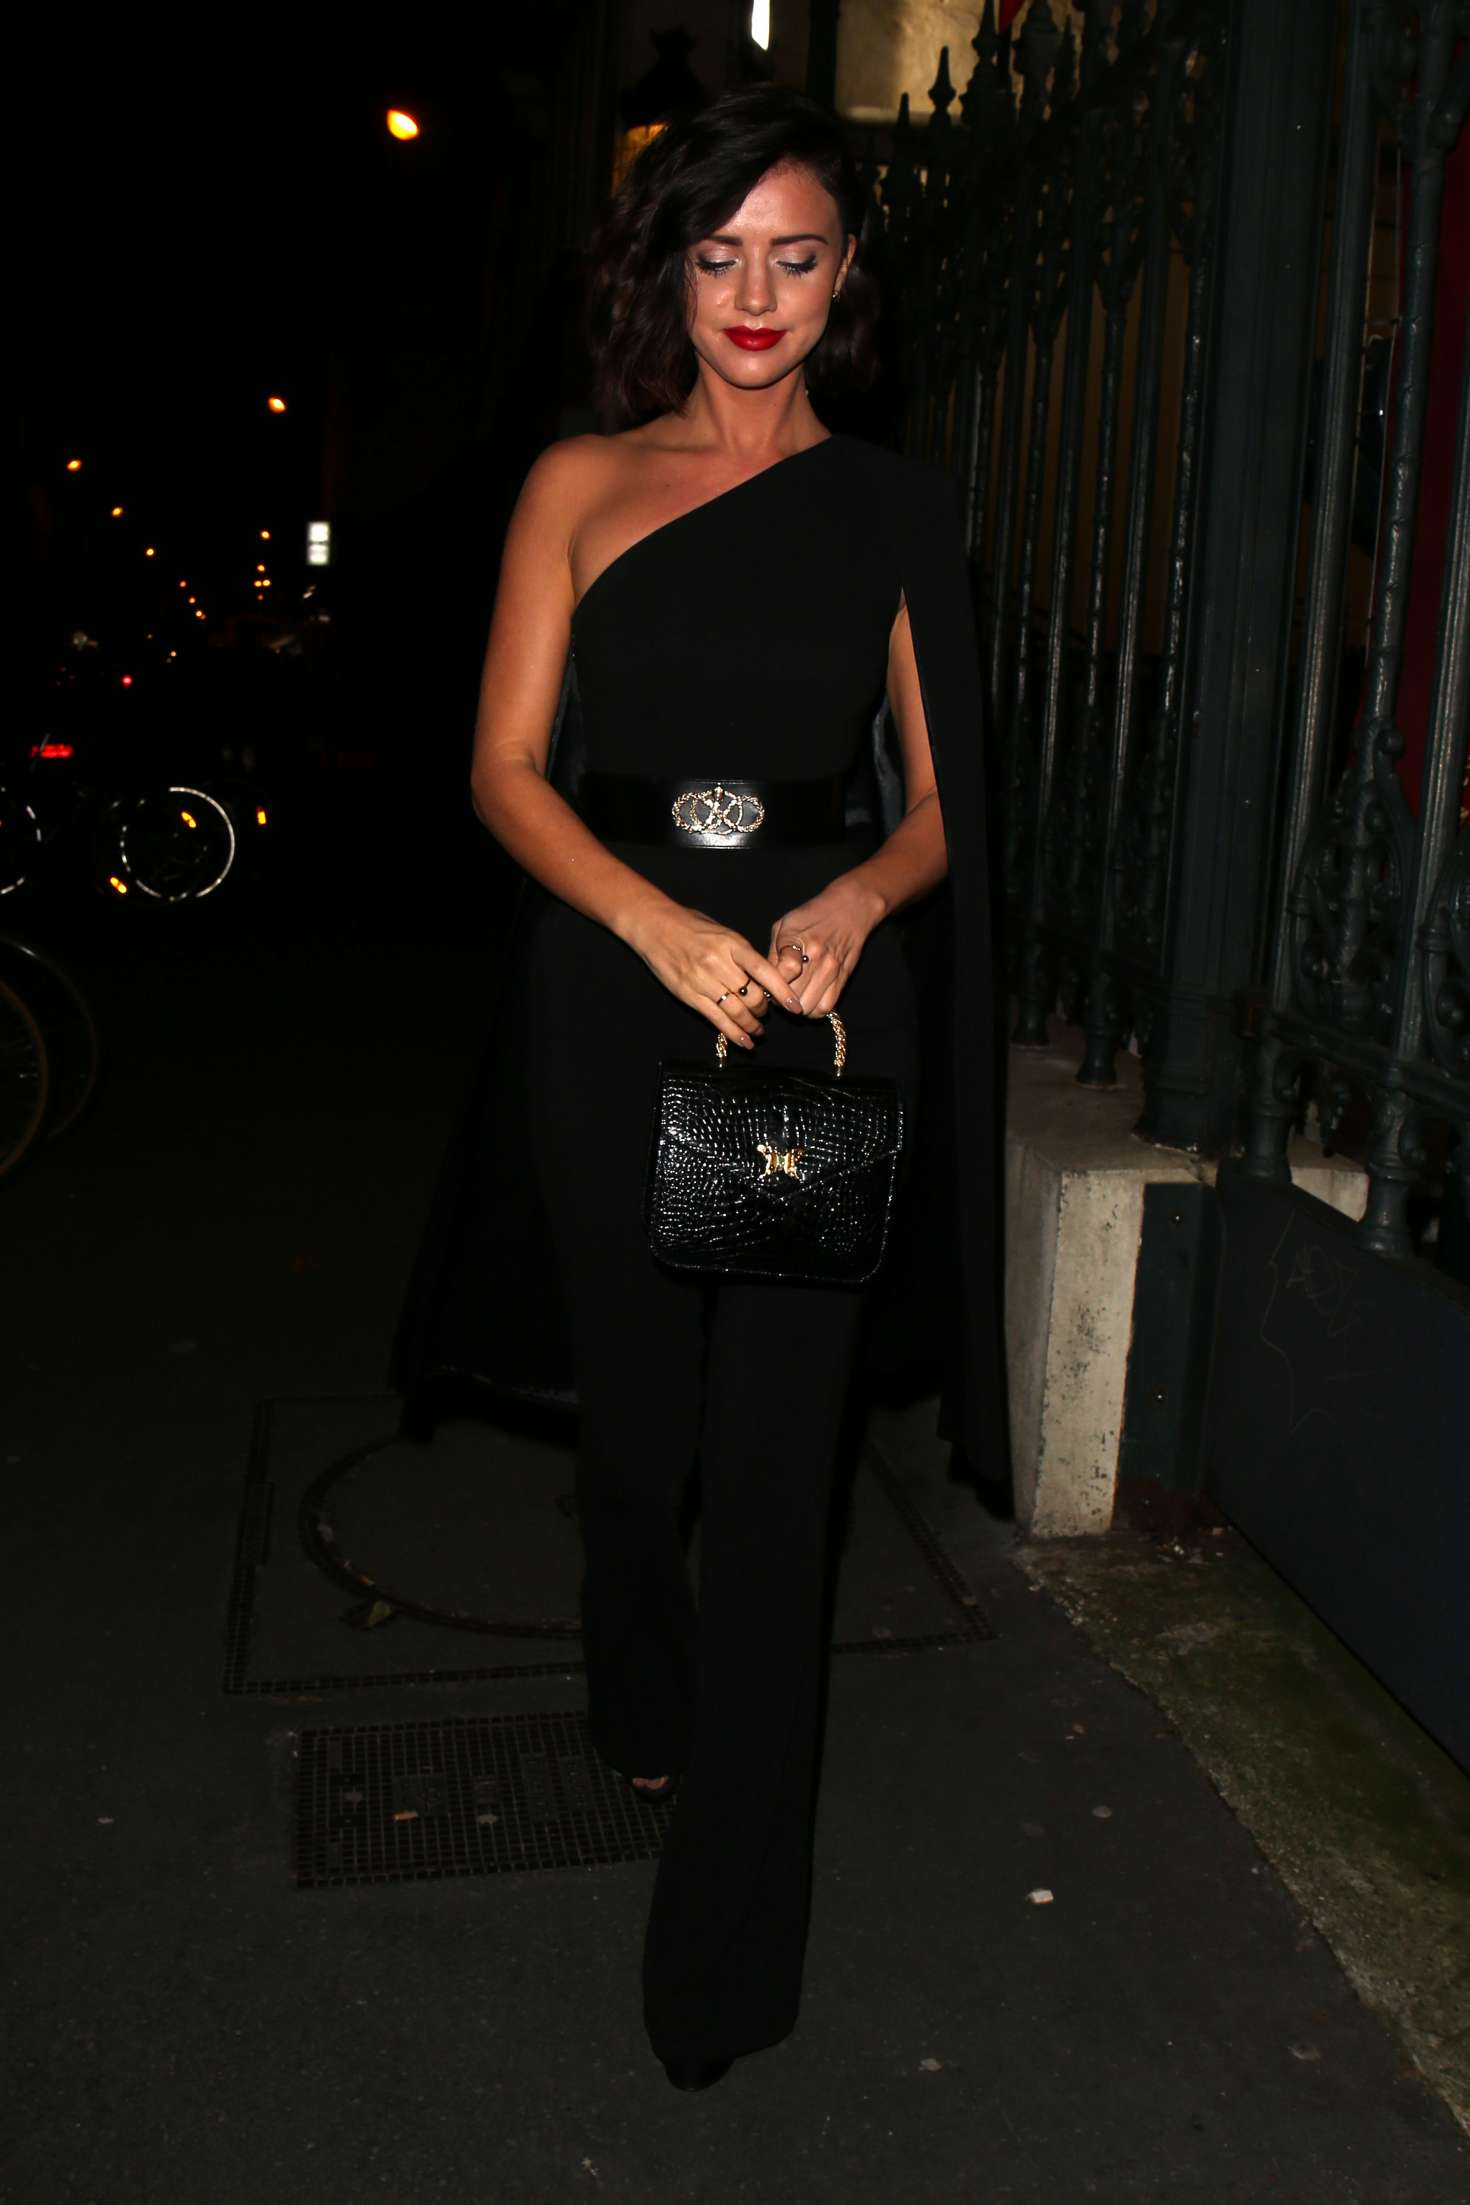 Lucy Mecklenburgh 2018 : Lucy Mecklenburgh: Arriving at Gun Pei Fashion Show 2018 -02